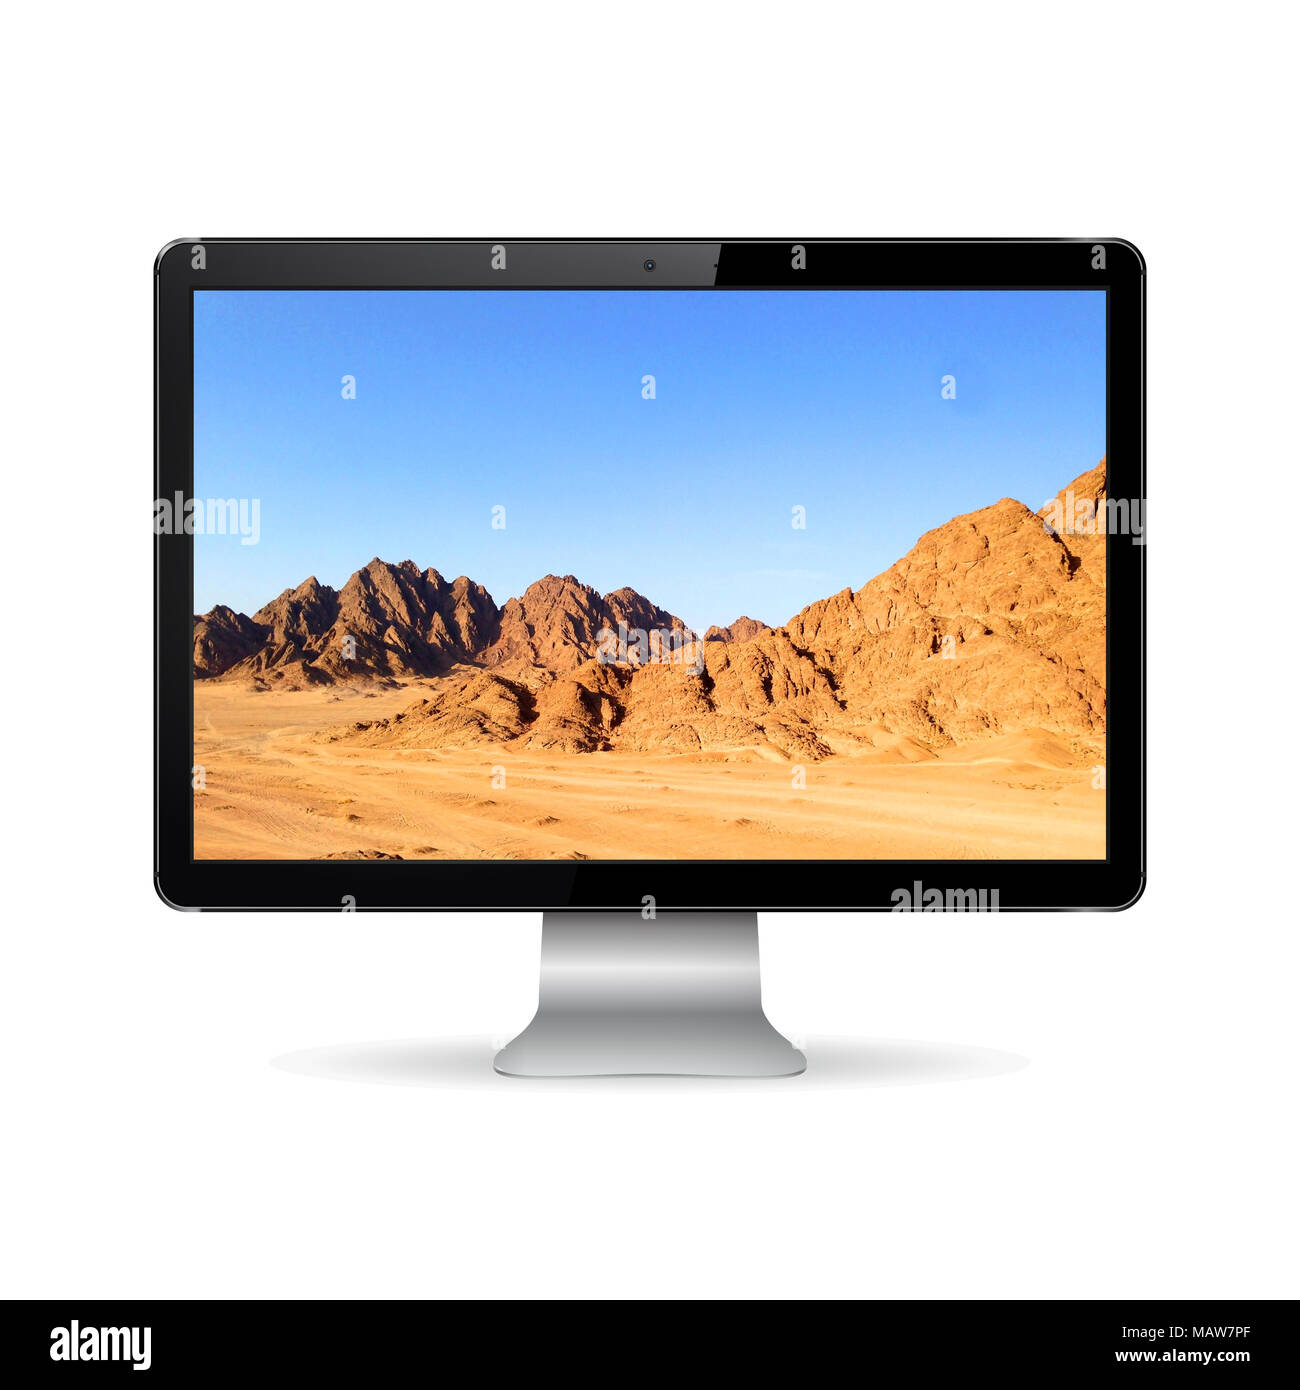 Computer display with mountain landscape - Stock Image